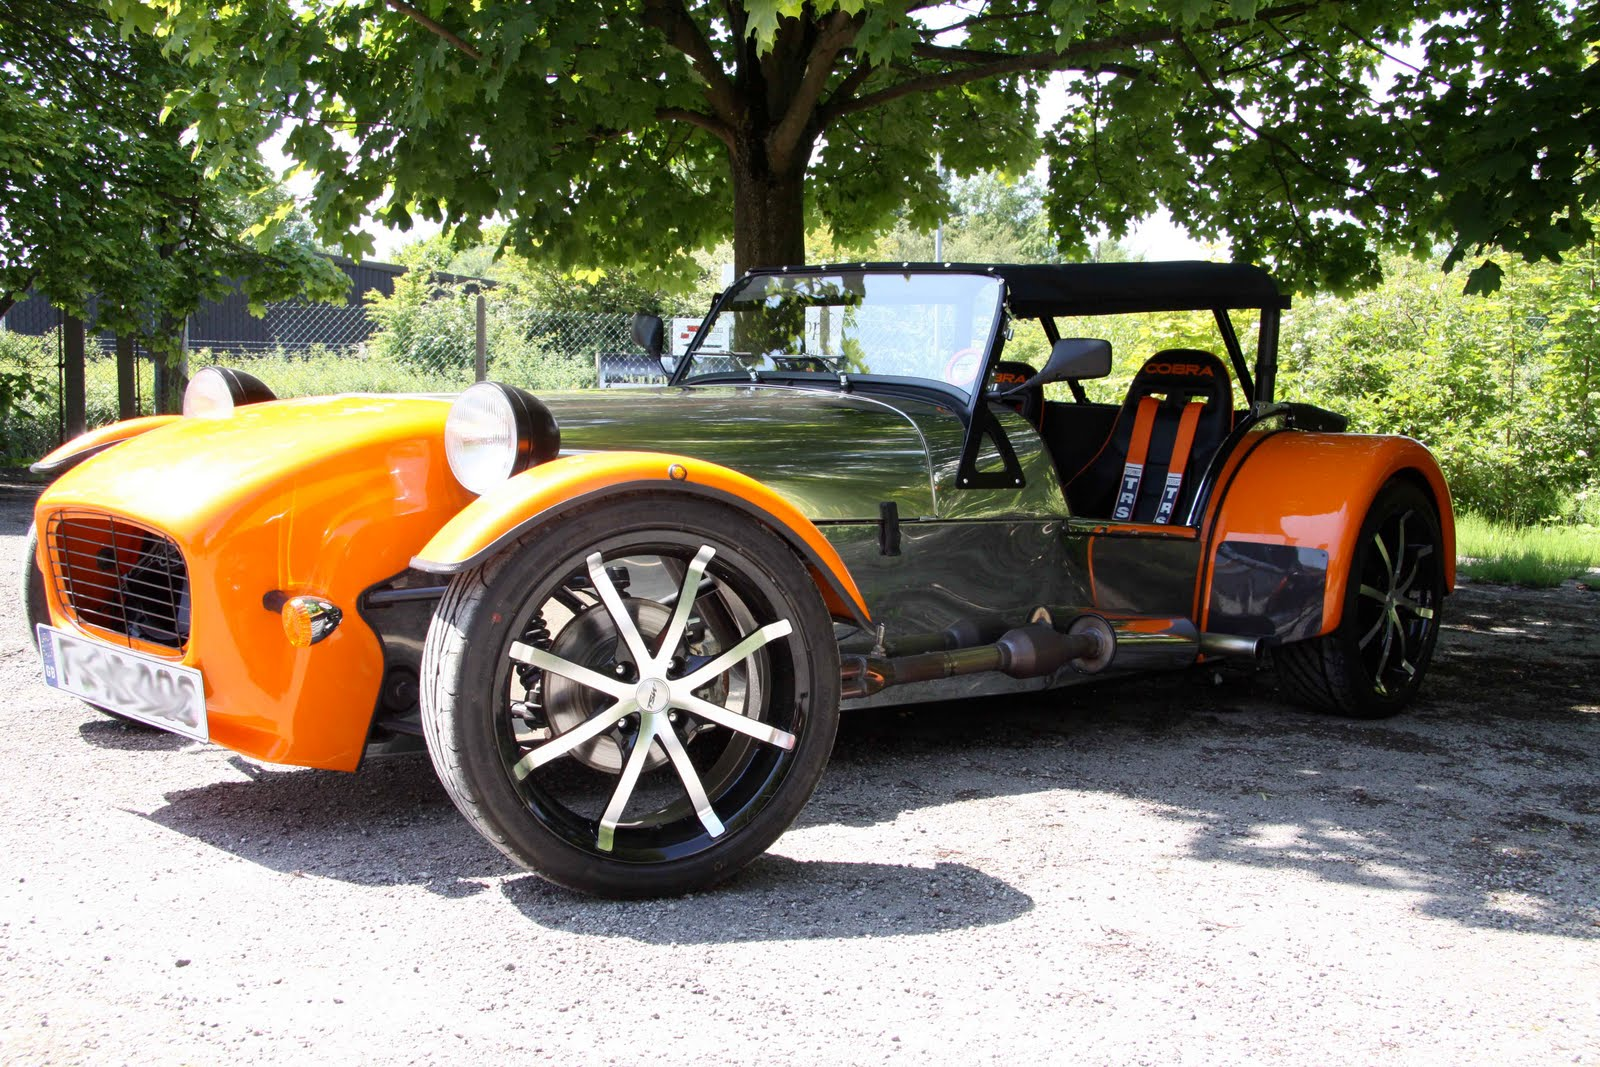 CUSTOMER COMES TO THE GBS FACTORY TODAY To Show Us His Finished - Gb sports cars zero